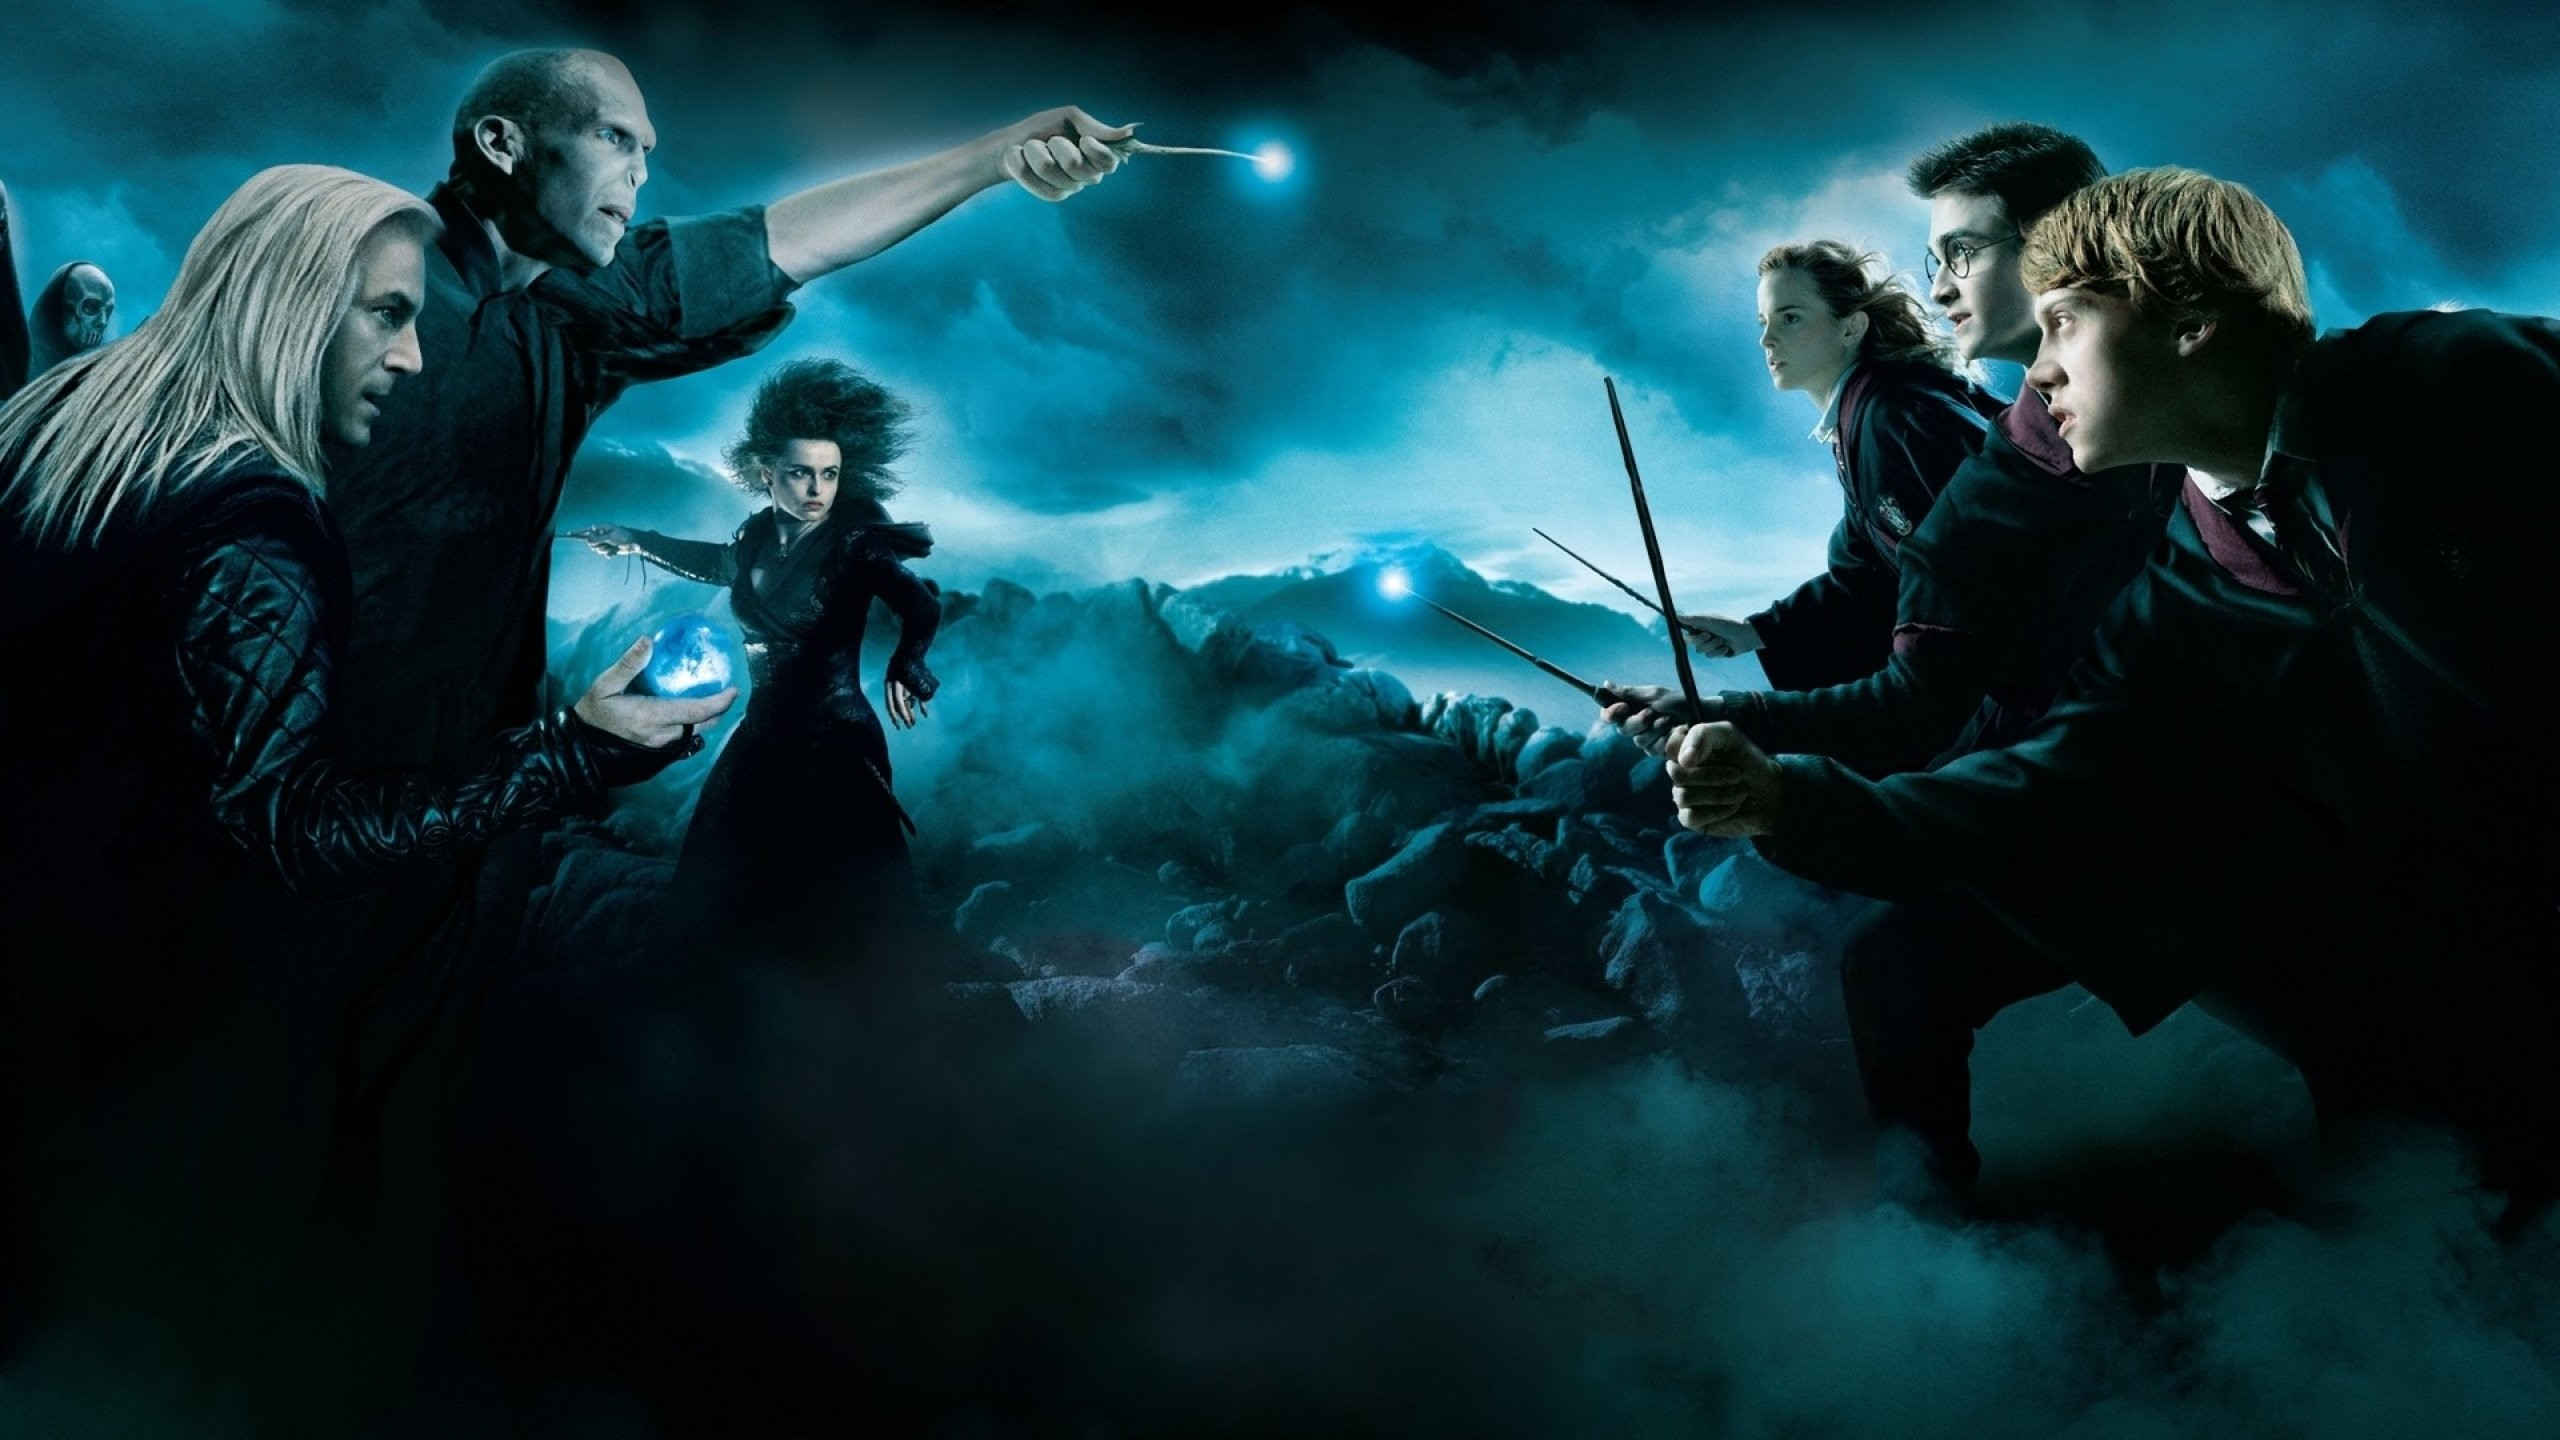 Harry Potter Computer Wallpaper, harry potter wallpapers hd